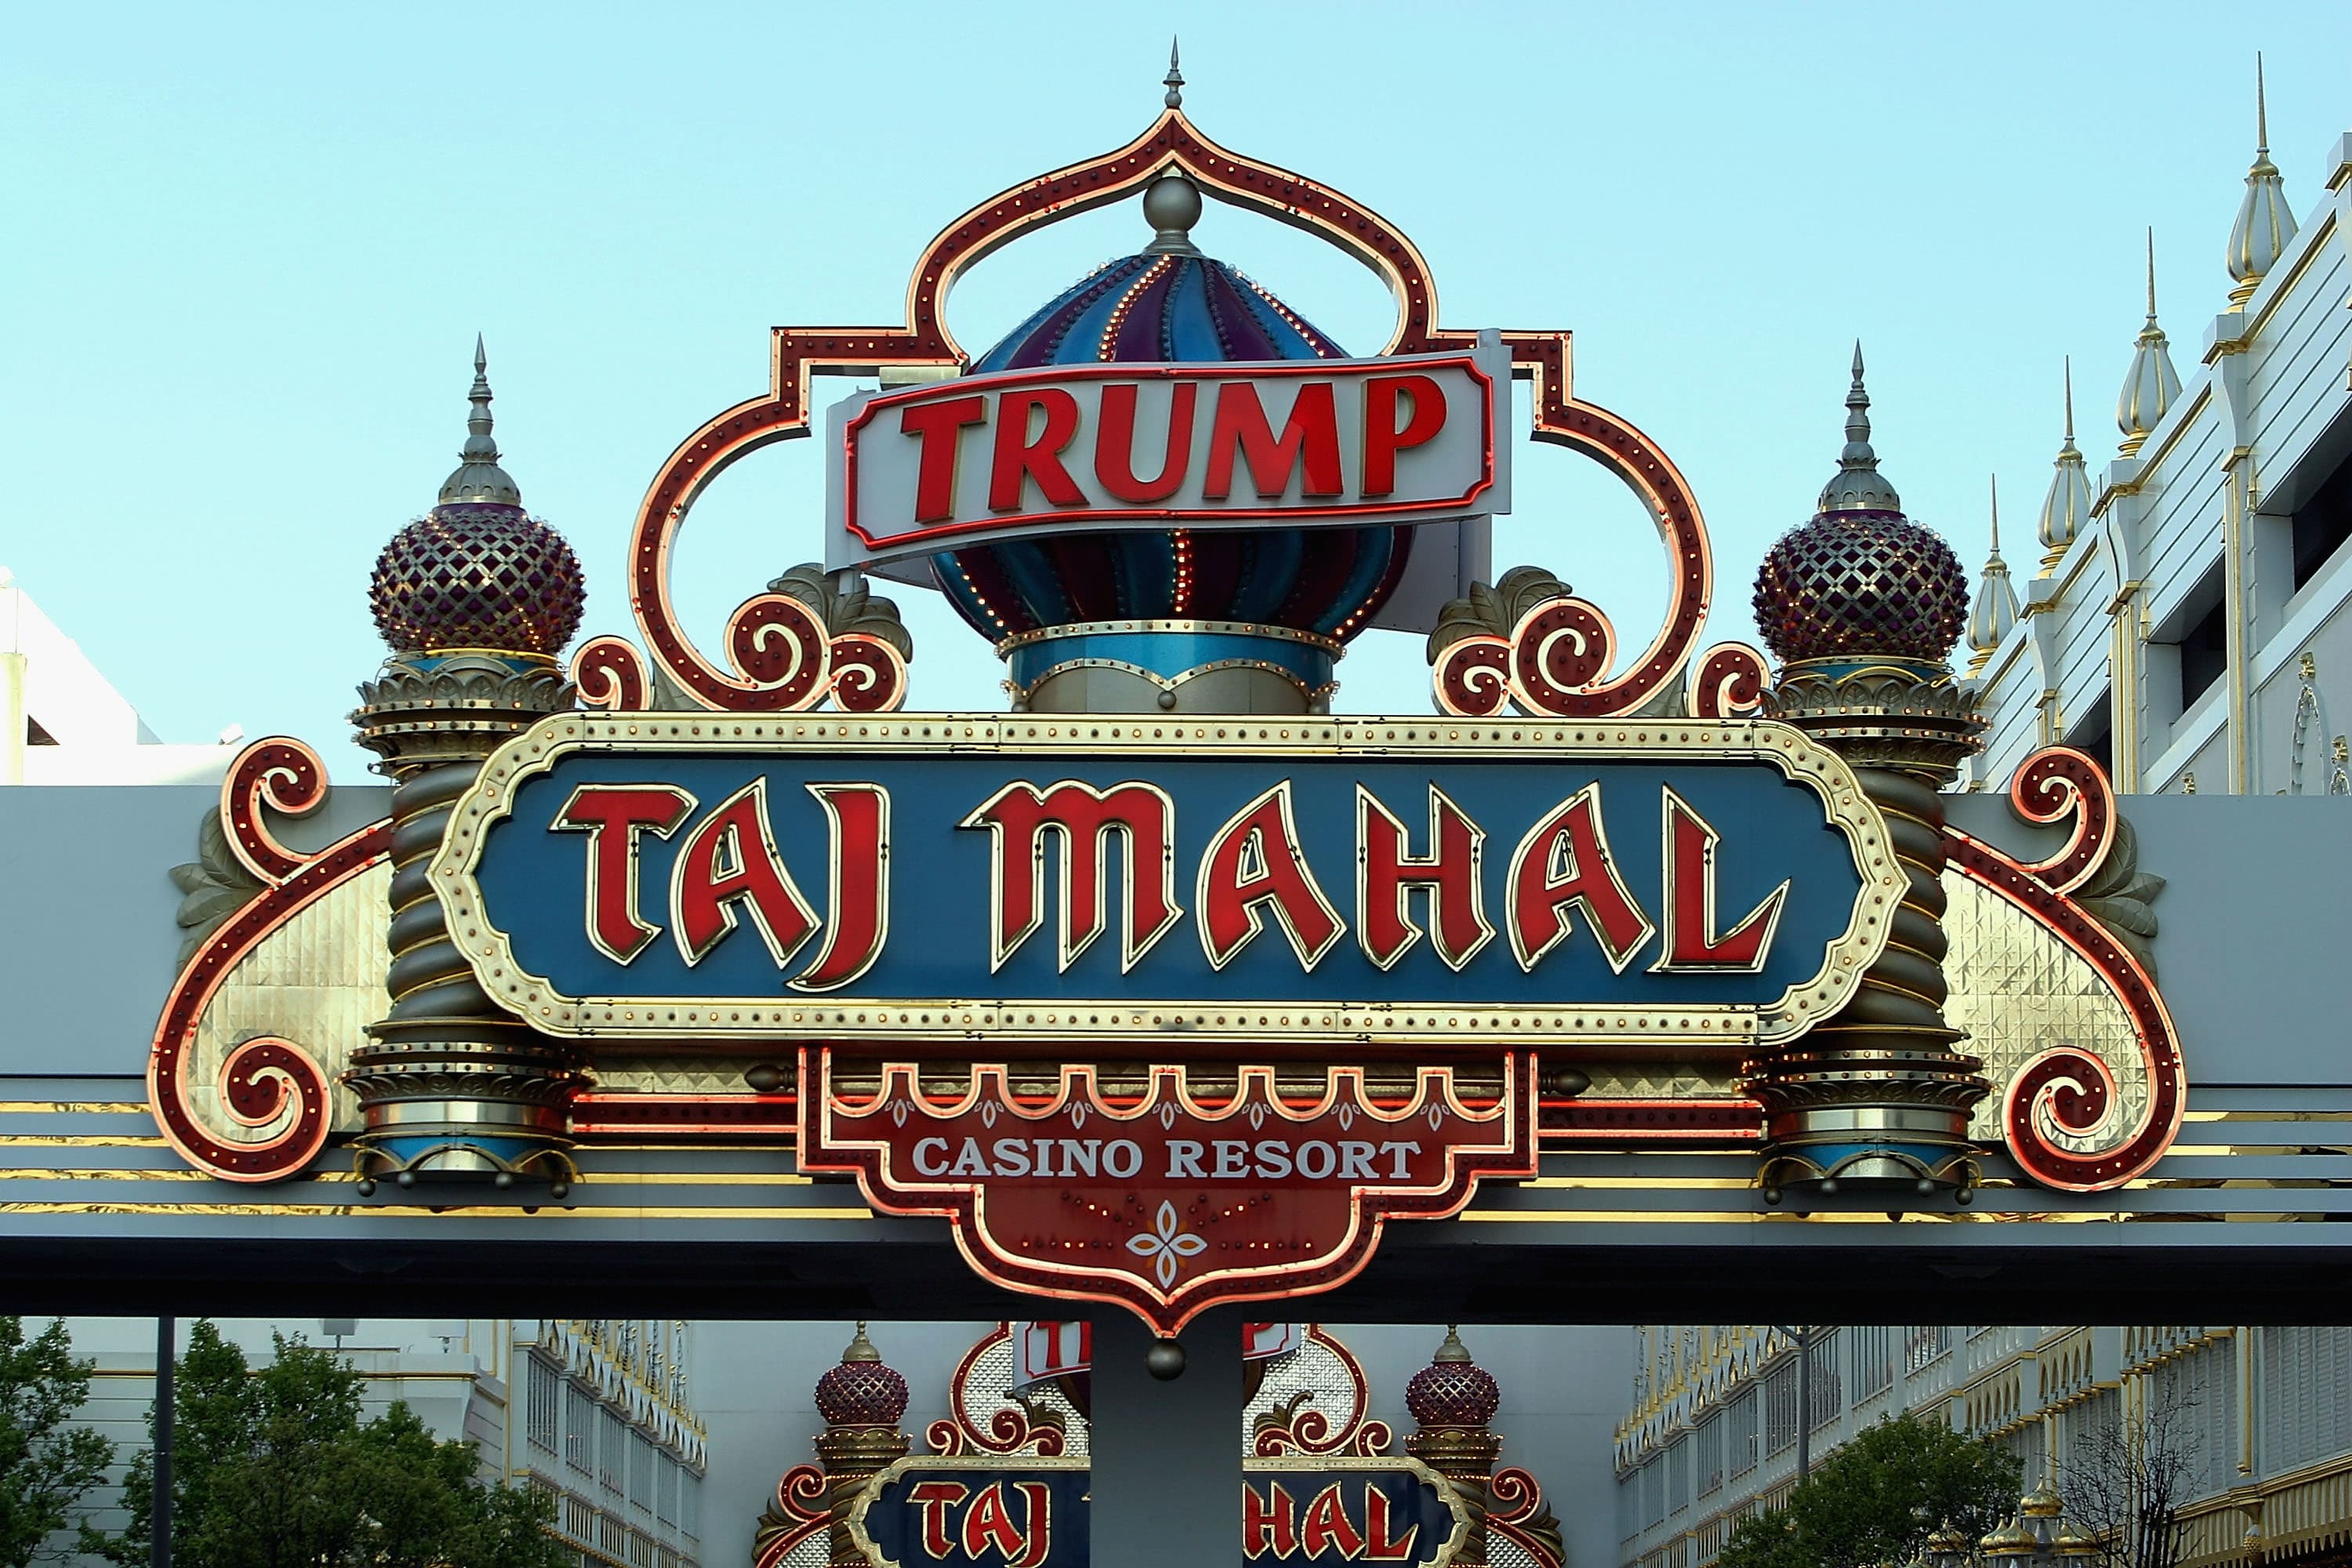 Consumer reports on trump casinos best casino online rated